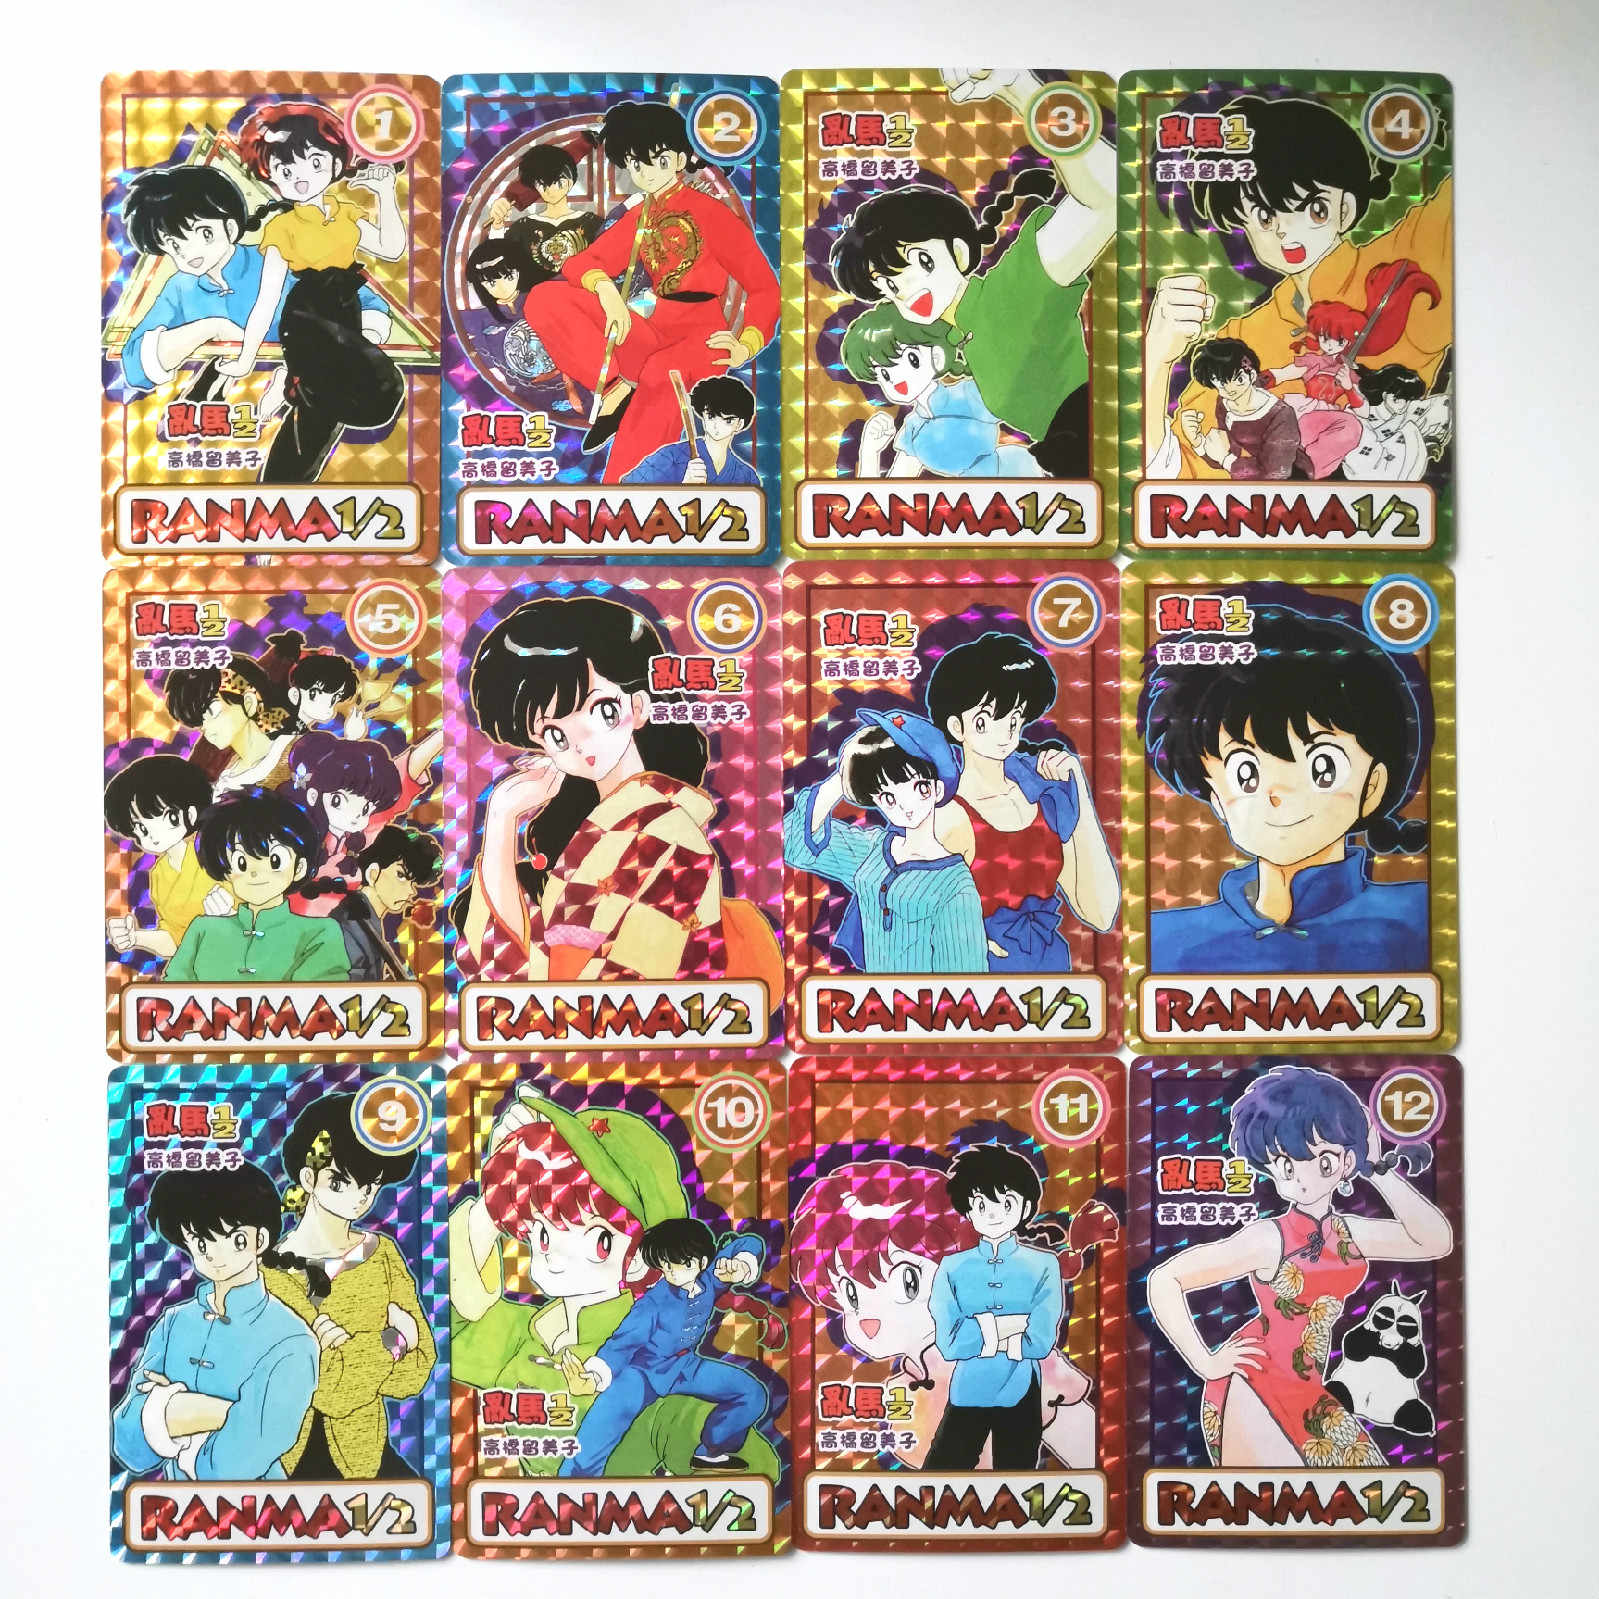 12 stks/set Ranma 1/2 Imitatie volledige versie oys Hobby Hobby Collectibles Game Collection Anime Kaarten